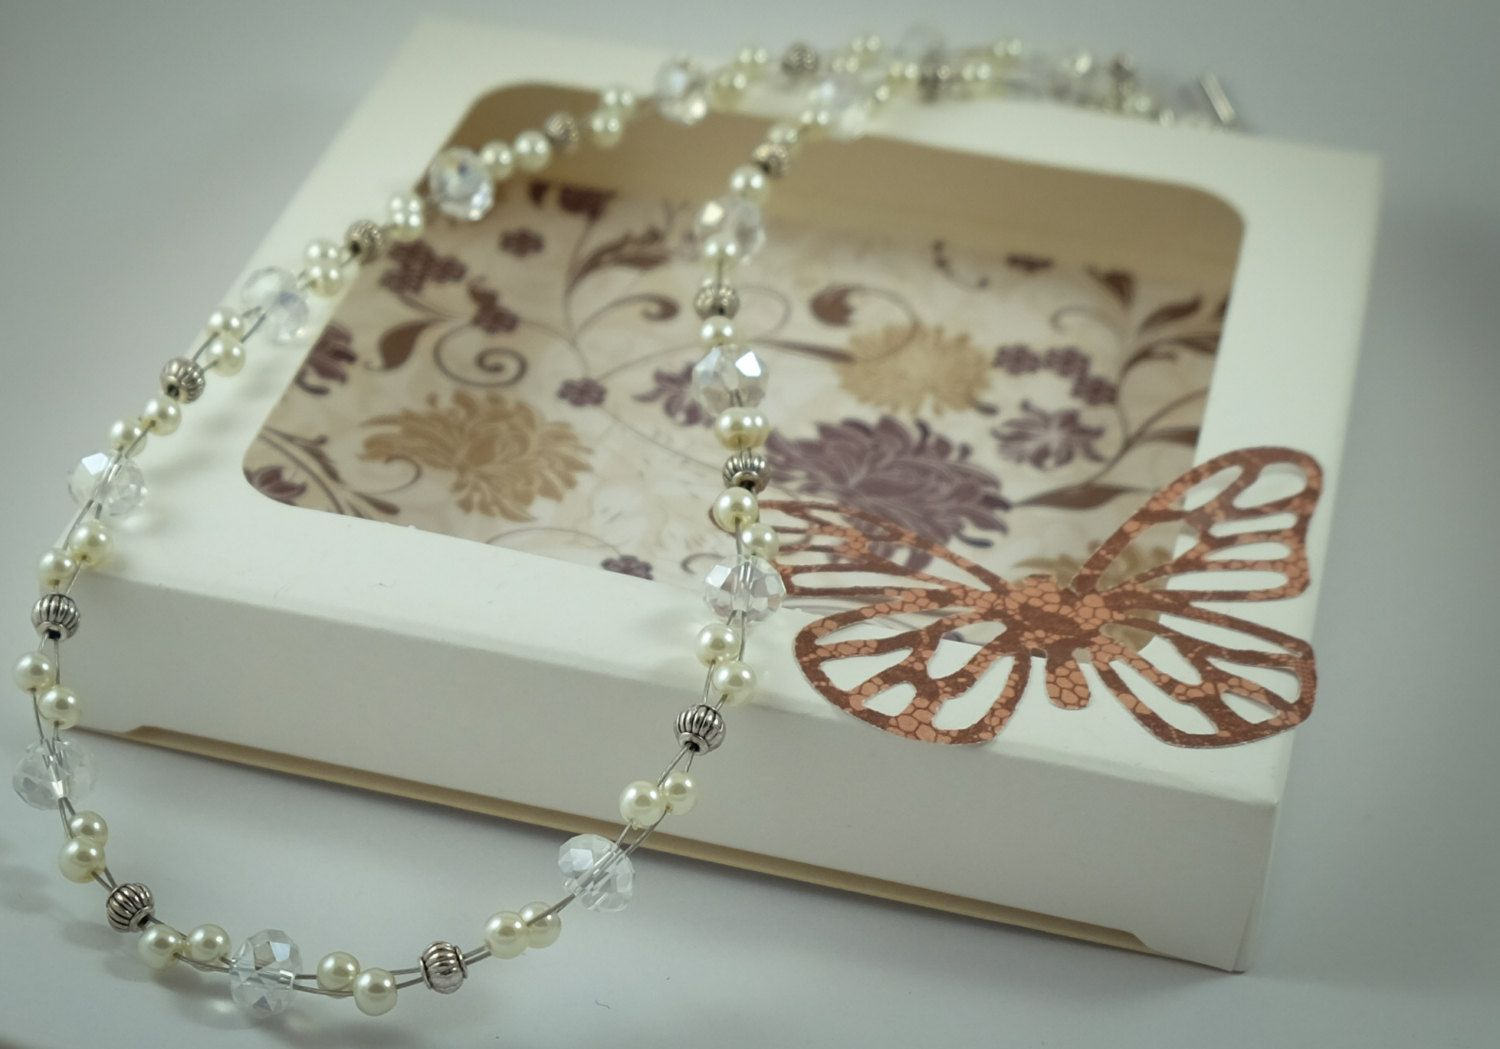 Ivory pearl and silver necklace by ButterflyJade on Etsy https://www.etsy.com/listing/223739251/ivory-pearl-and-silver-necklace